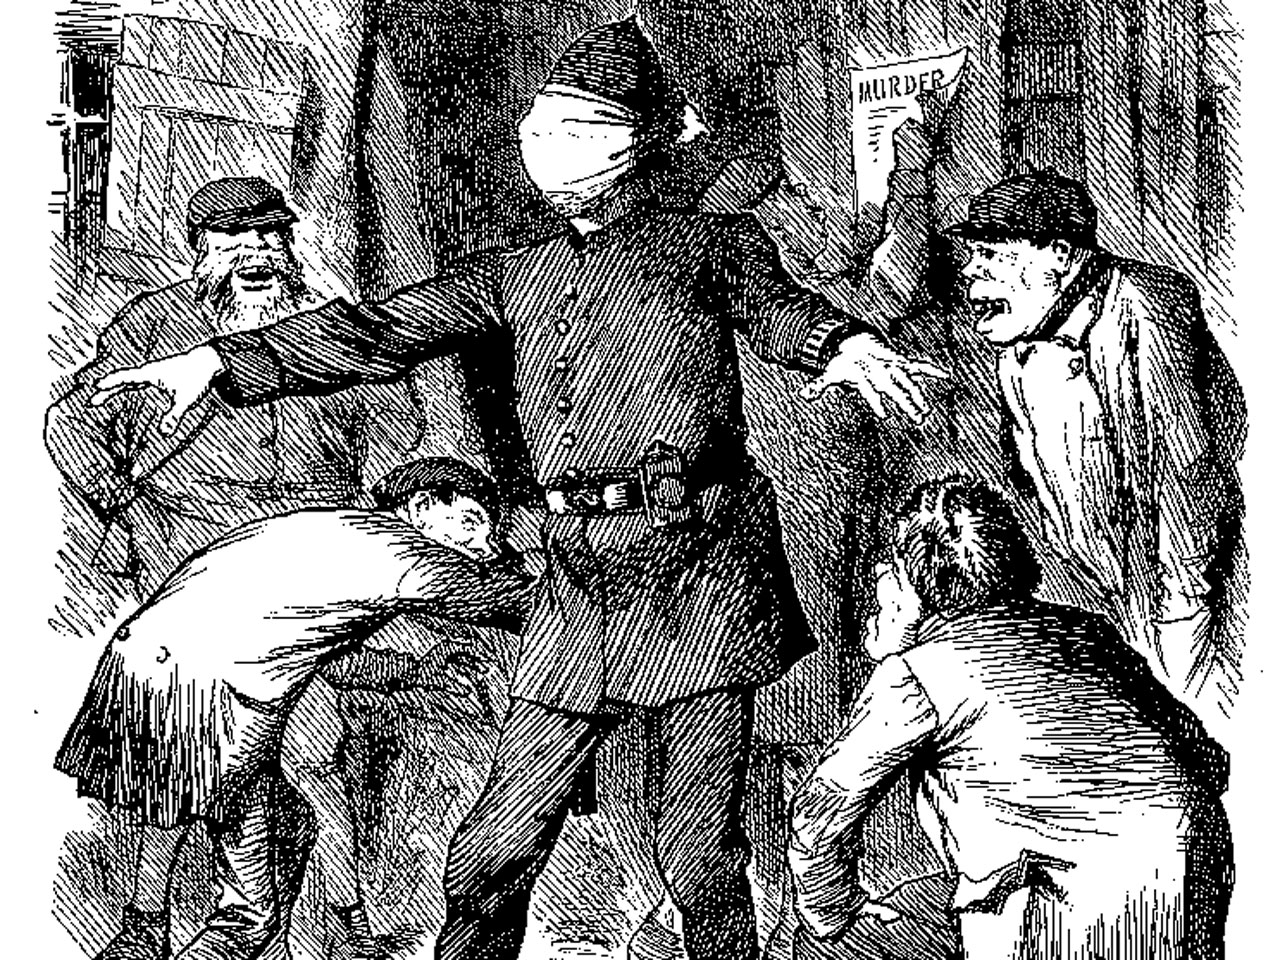 Jack the Ripper Case: 125 years later, murders of London prostitutes